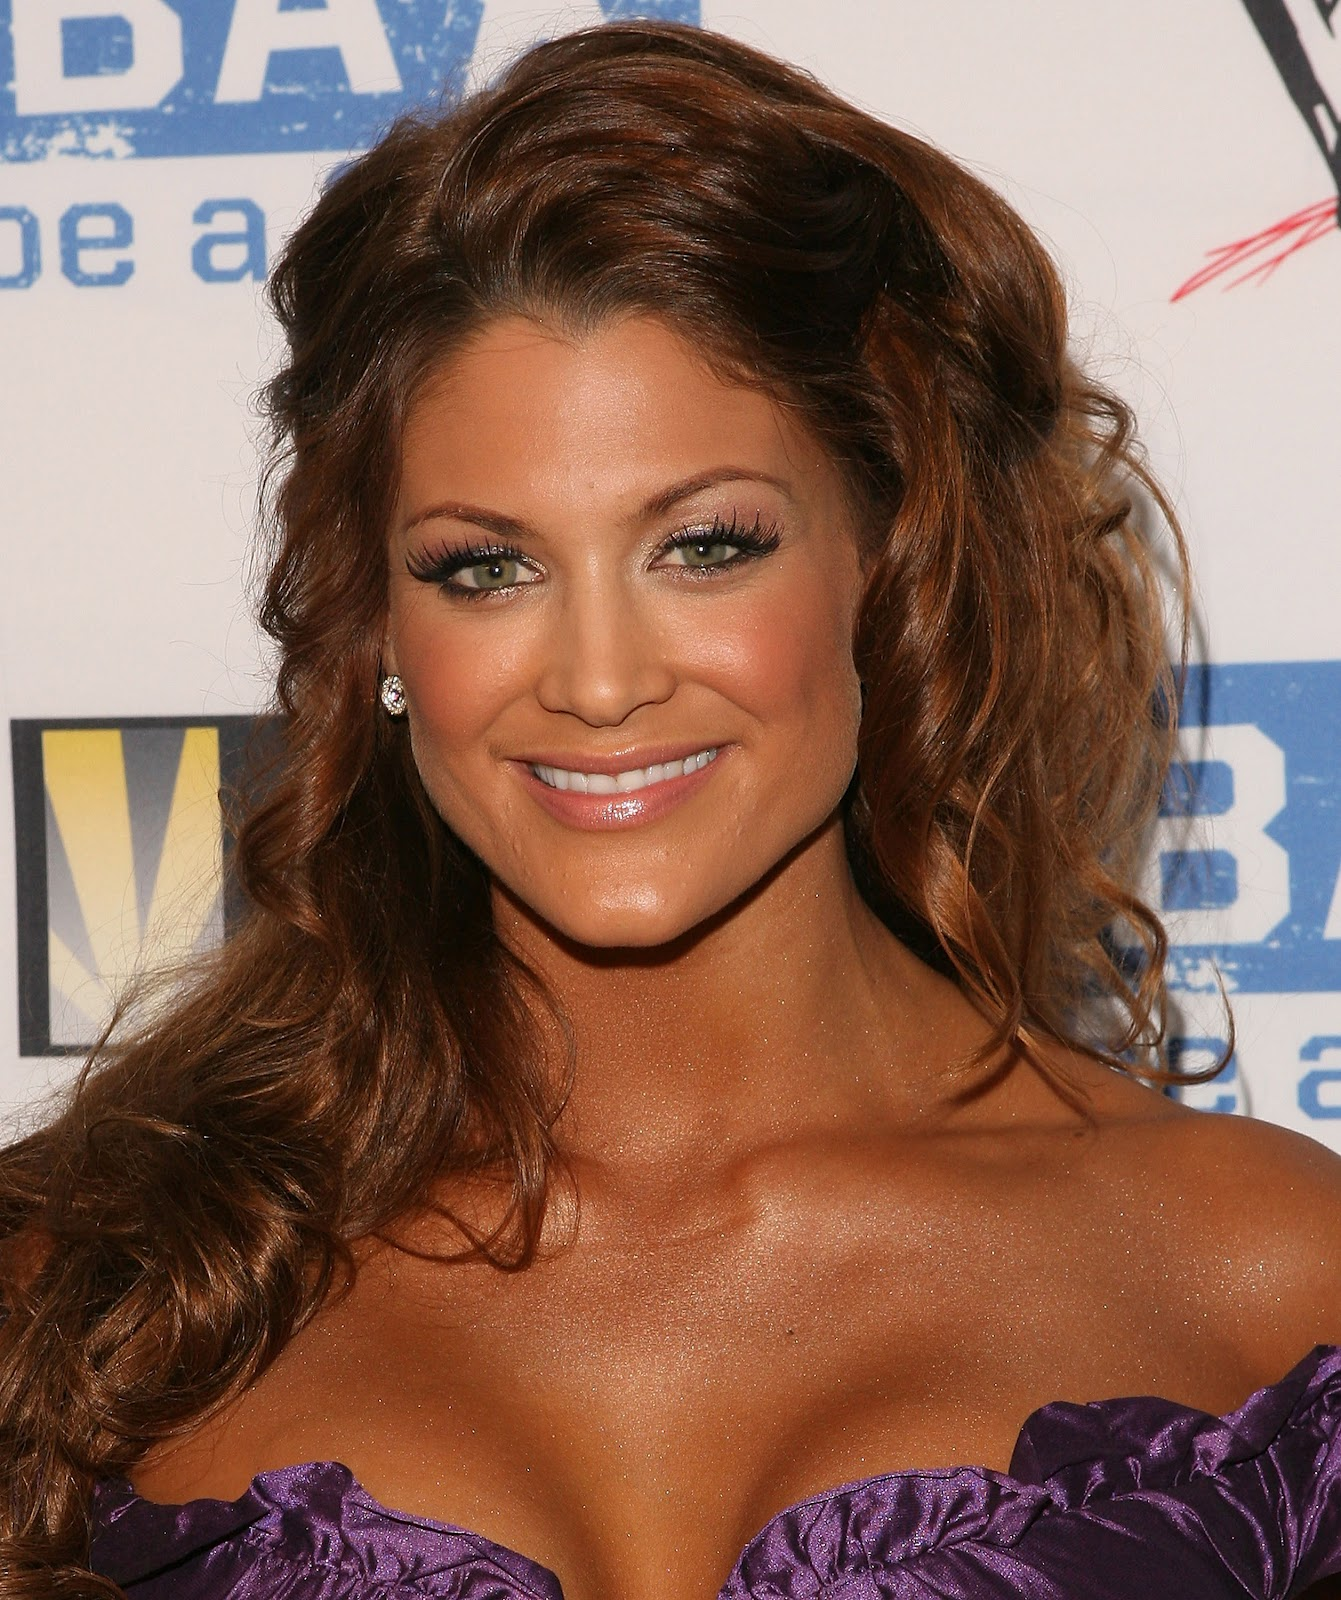 Wallpaperarea: Eve torres hd wallpapers part two